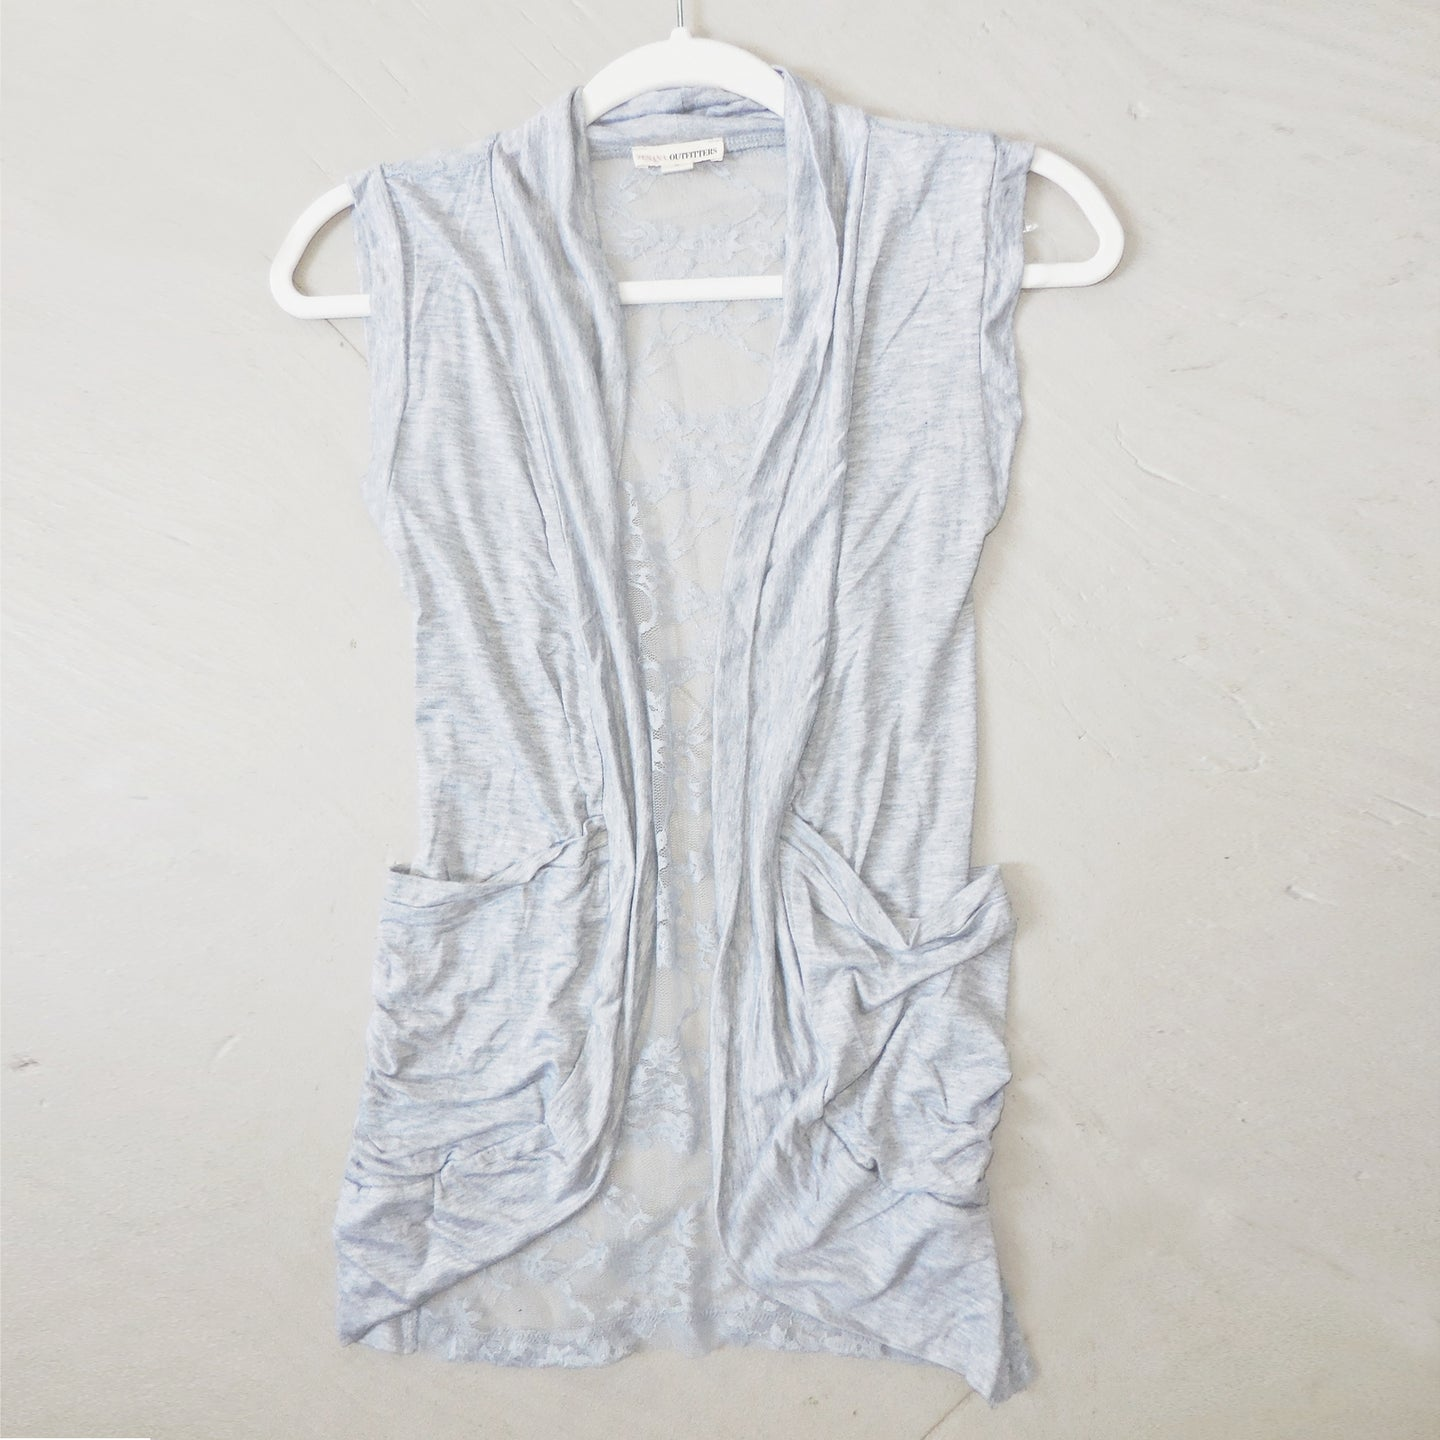 Making Memories Lace Back Vest in Lt Gray